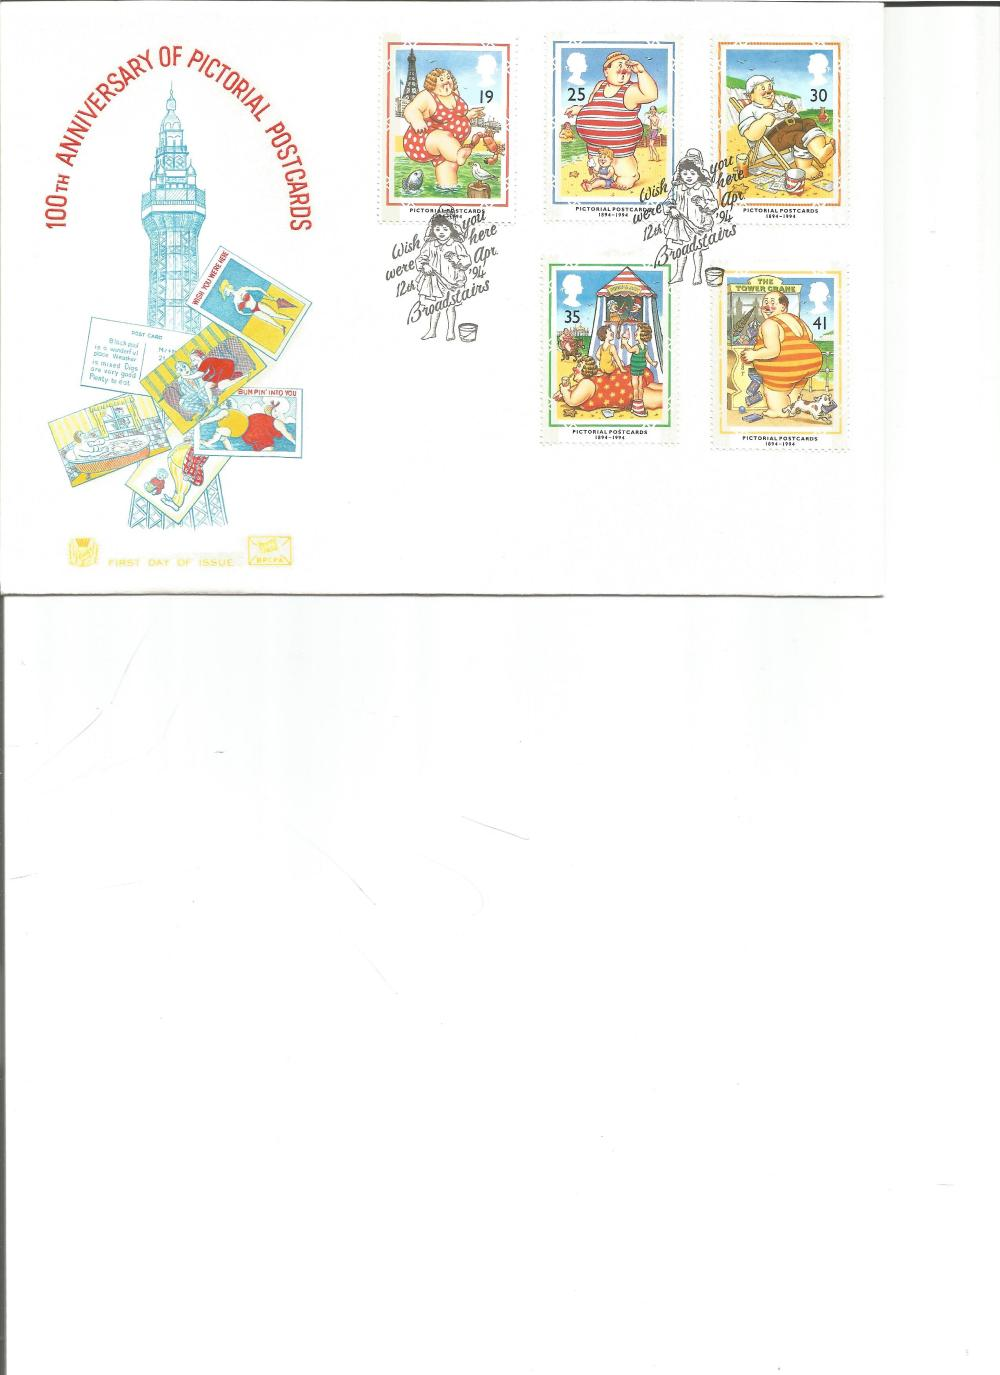 FDC 100TH Anniversary of Pictorial Postcards c/w set of five commemorative stamps , double PM Wish